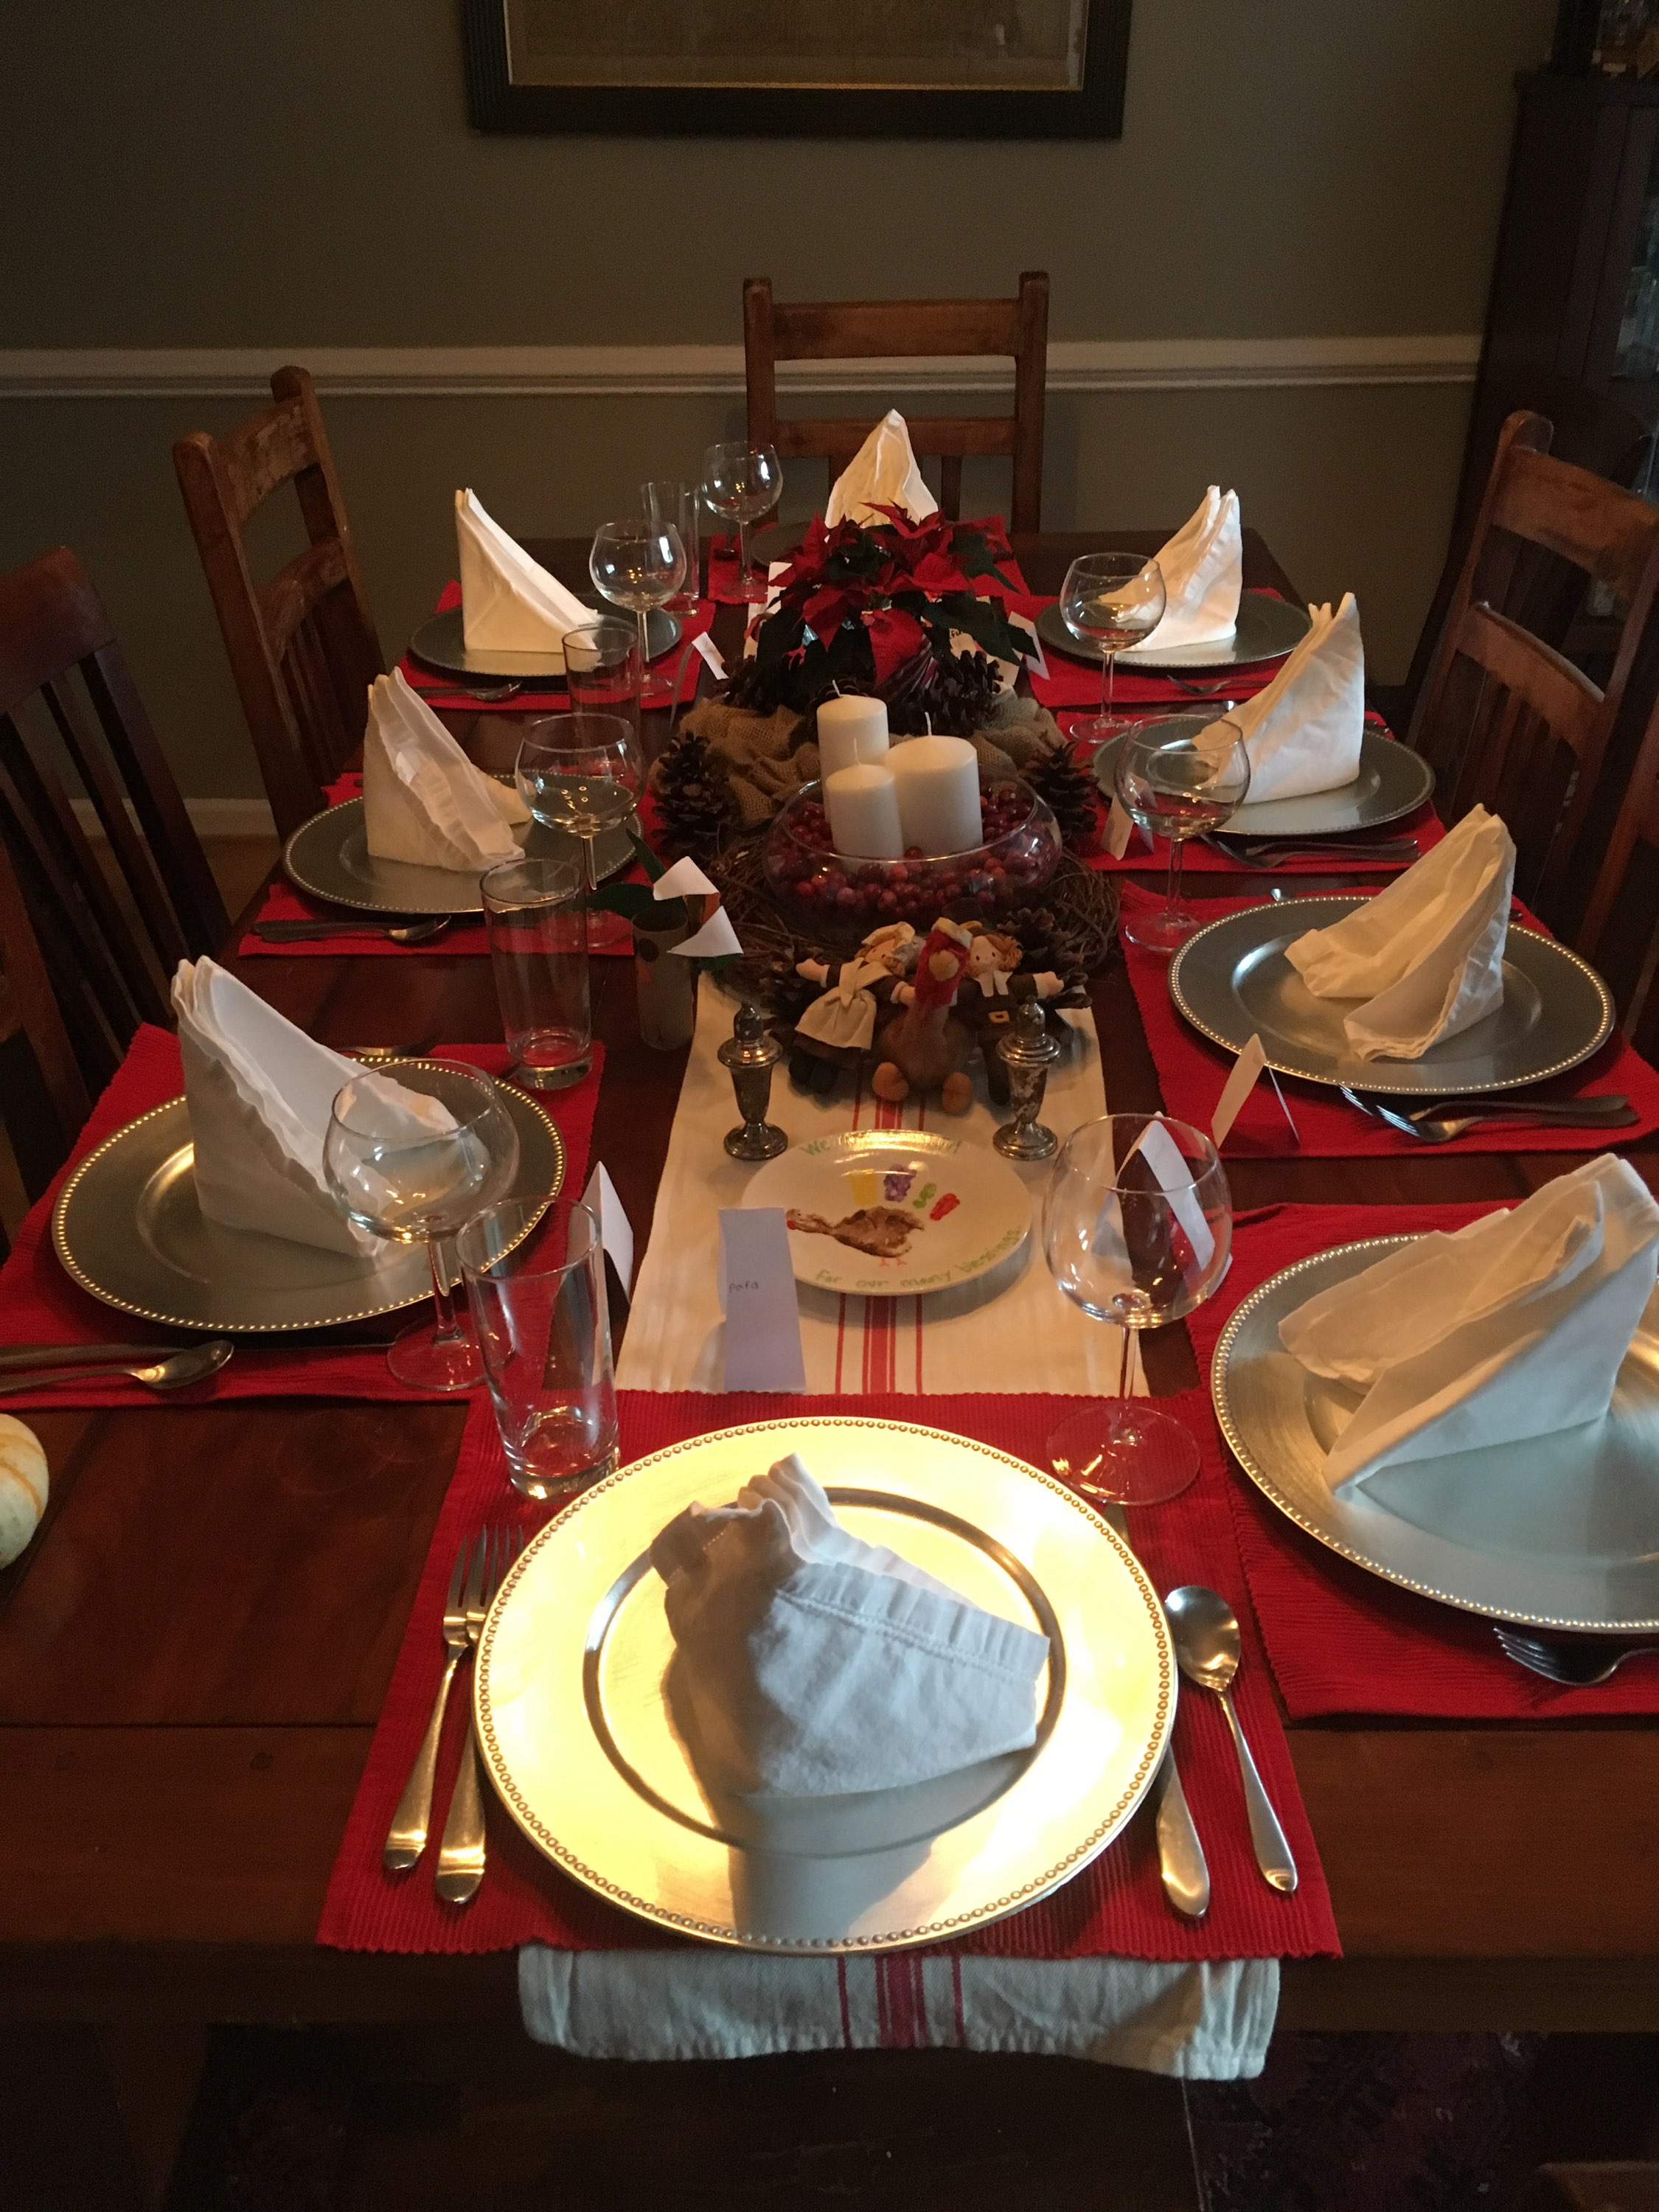 Dinner table set with food